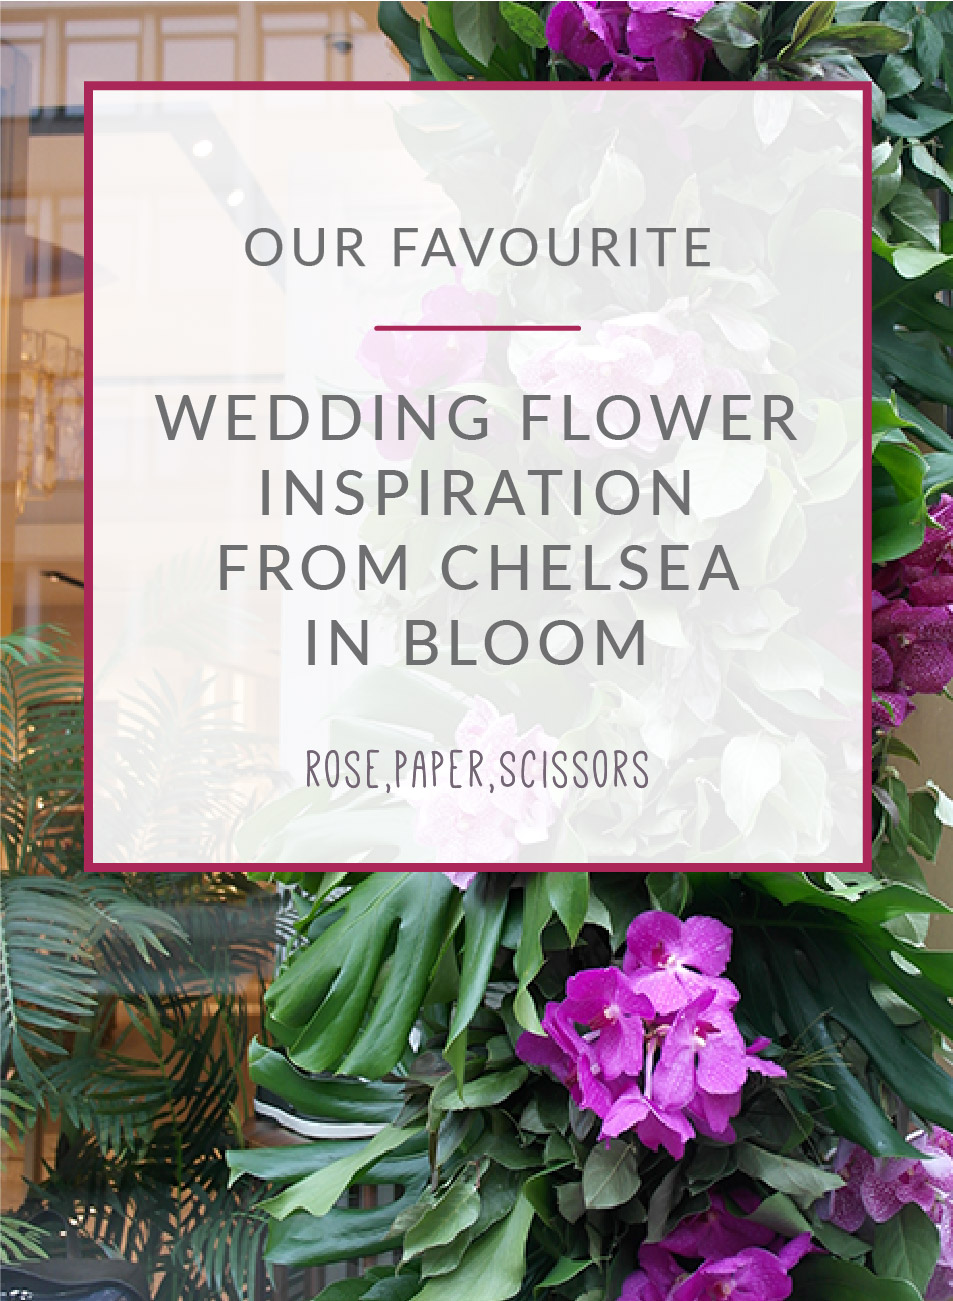 wedding flower inspiration Chelsea in bloom